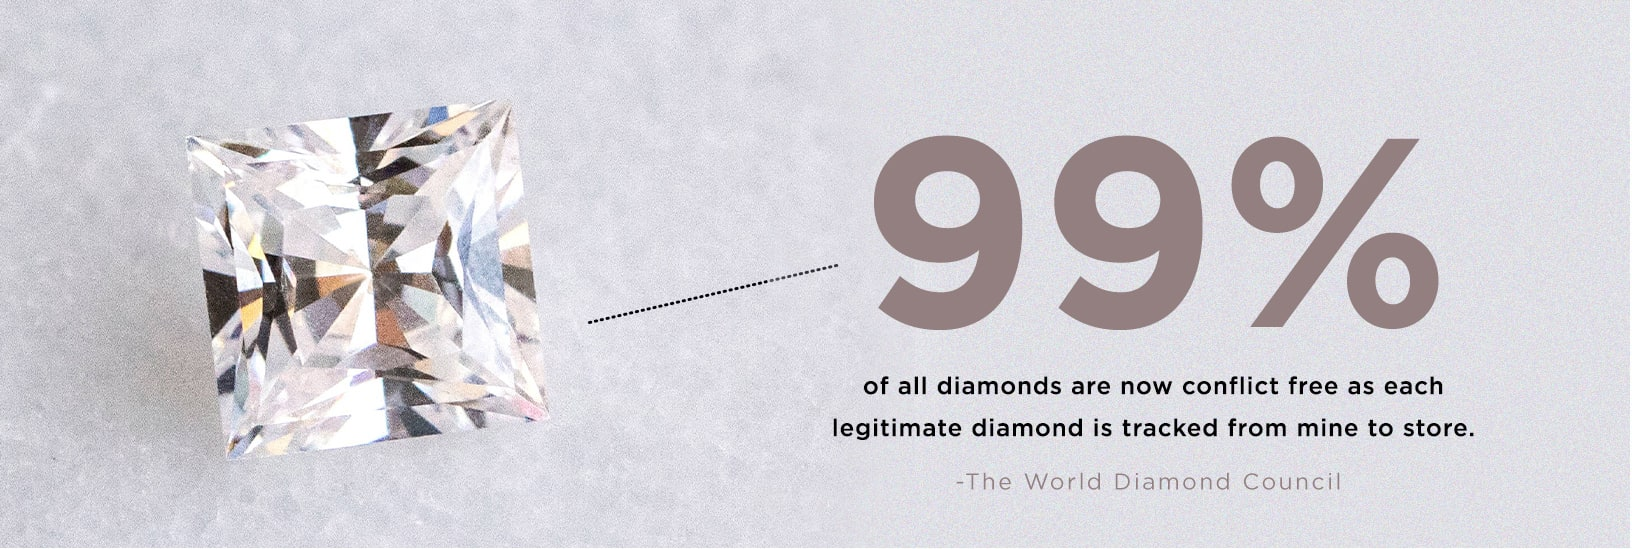 Many of today's diamonds are conflict free